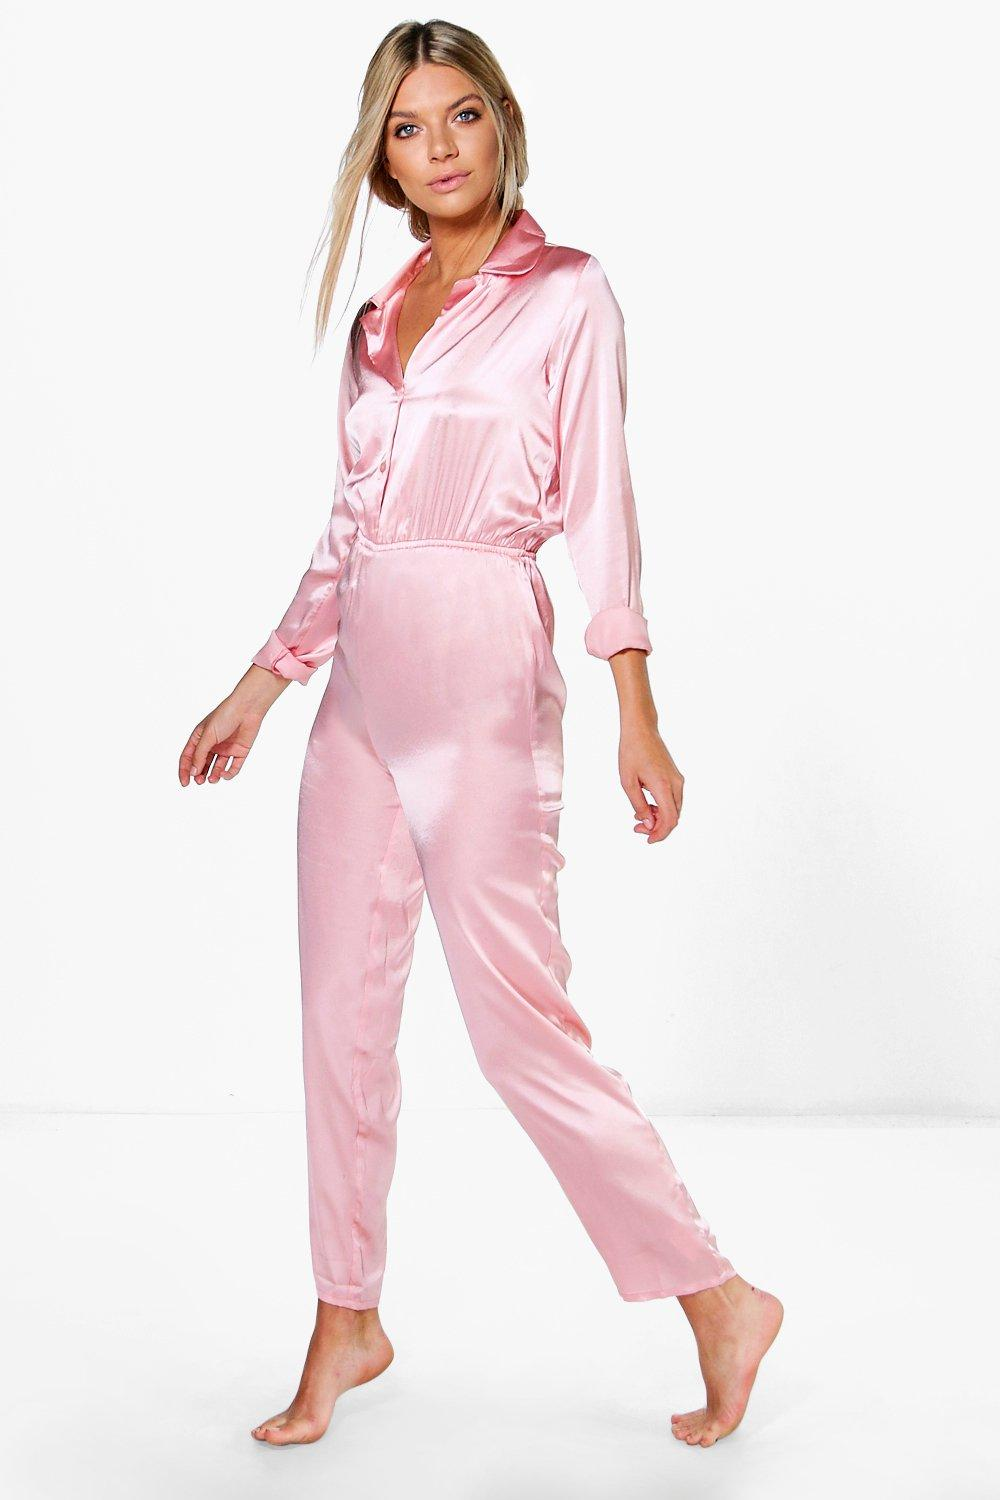 6c8b807fec76 Keira Long Sleeve Satin Lounge Jumpsuit. Hover to zoom